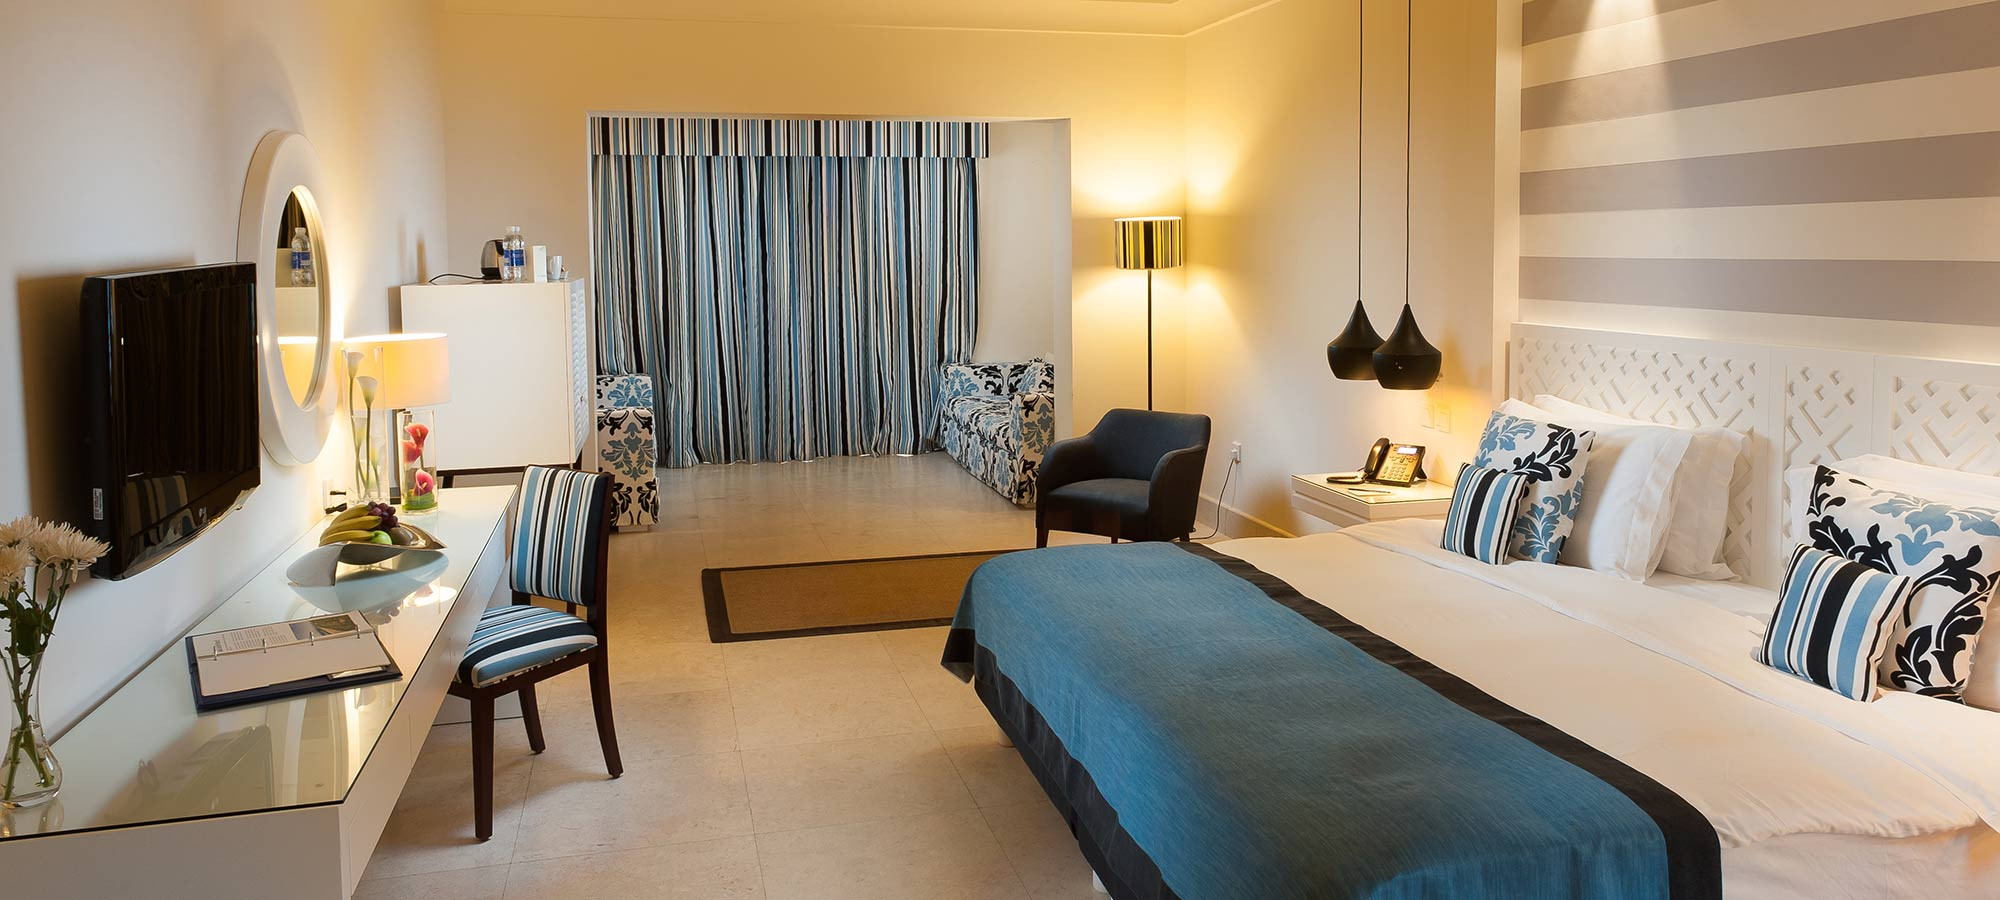 Best ideas about Family Room Hotel . Save or Pin Family Room in Salalah Juweira Boutique Hotel Now.